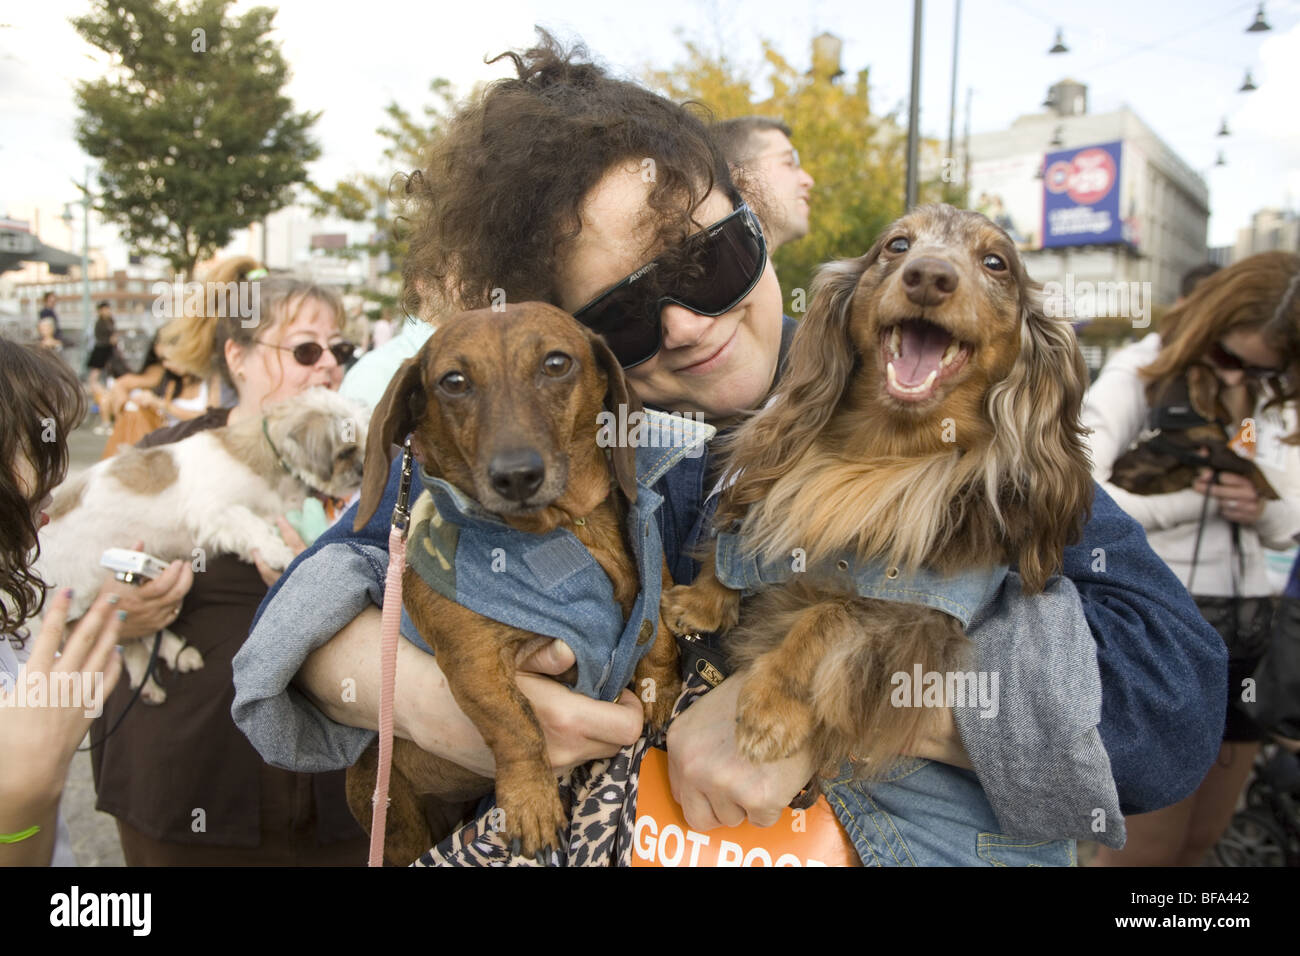 2009: New York CIty, 3rd Annual dog parade and contest at Pier 84 in Manhattan. Stock Photo